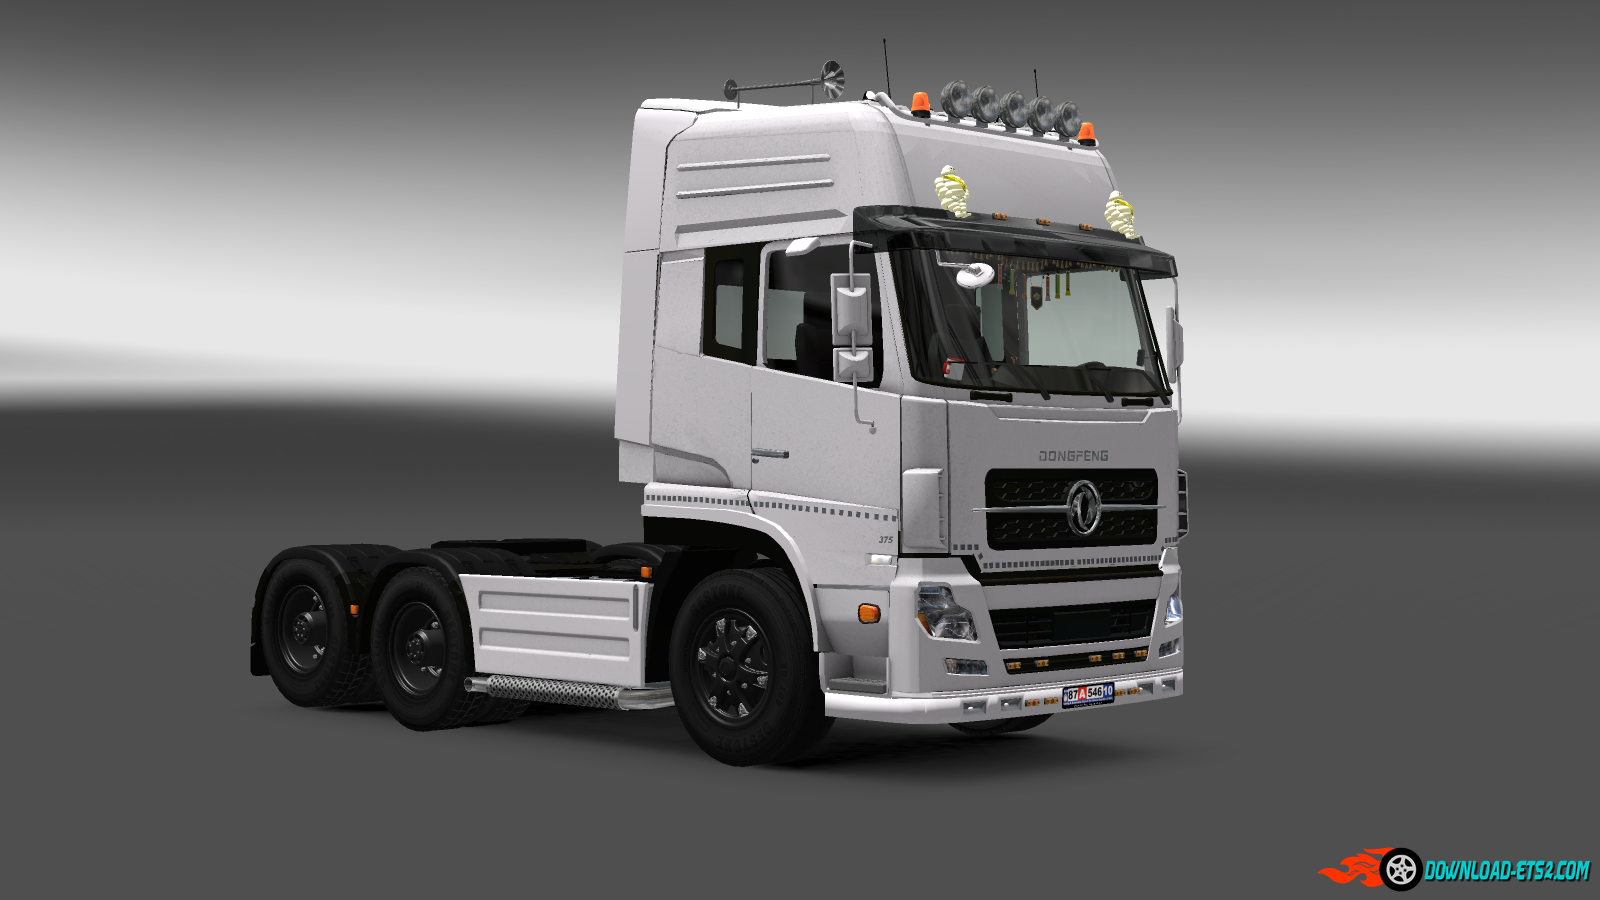 DONGFENG Truck v2